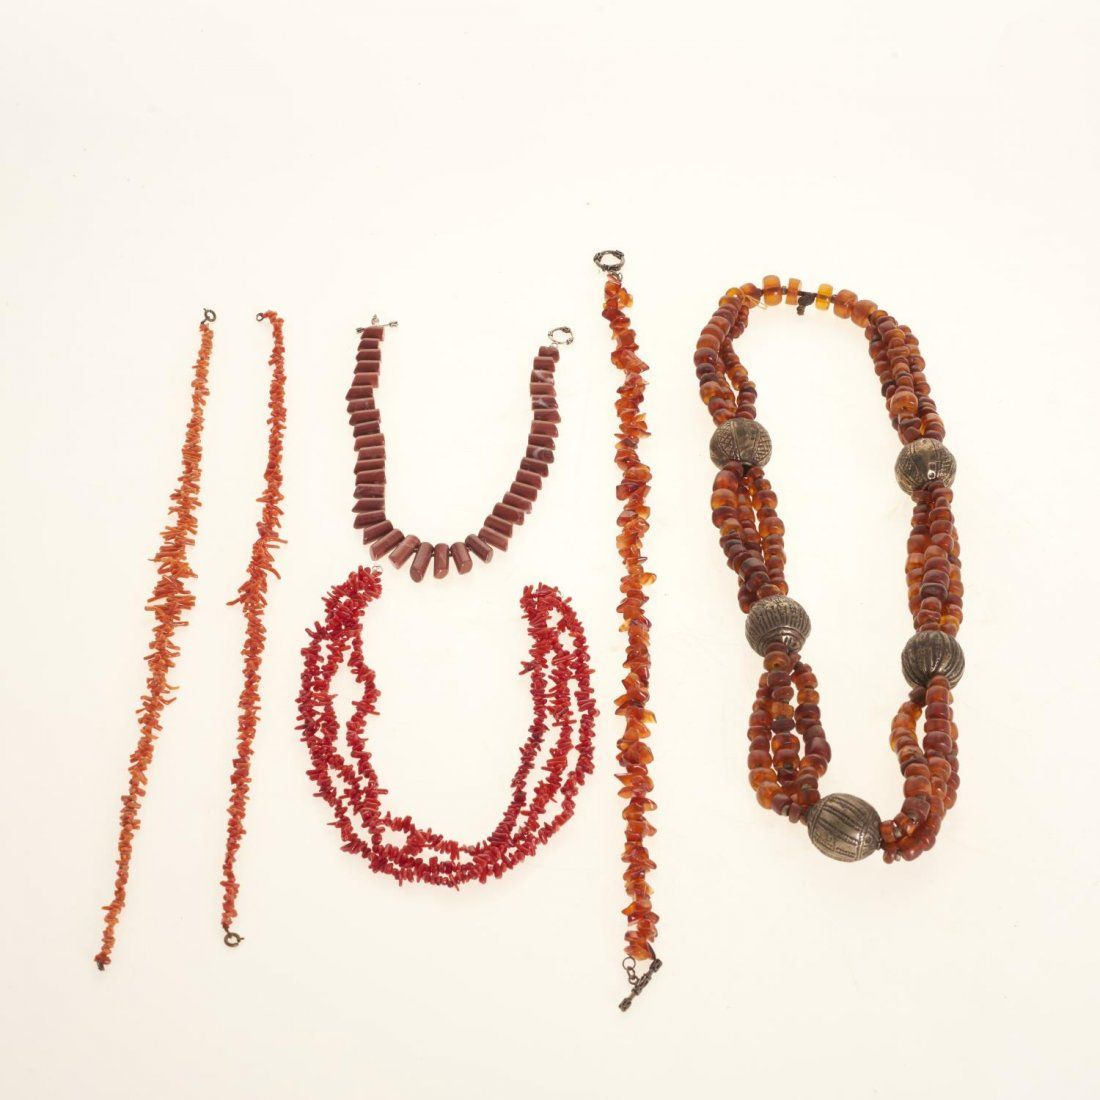 Coral and amber bead necklaces